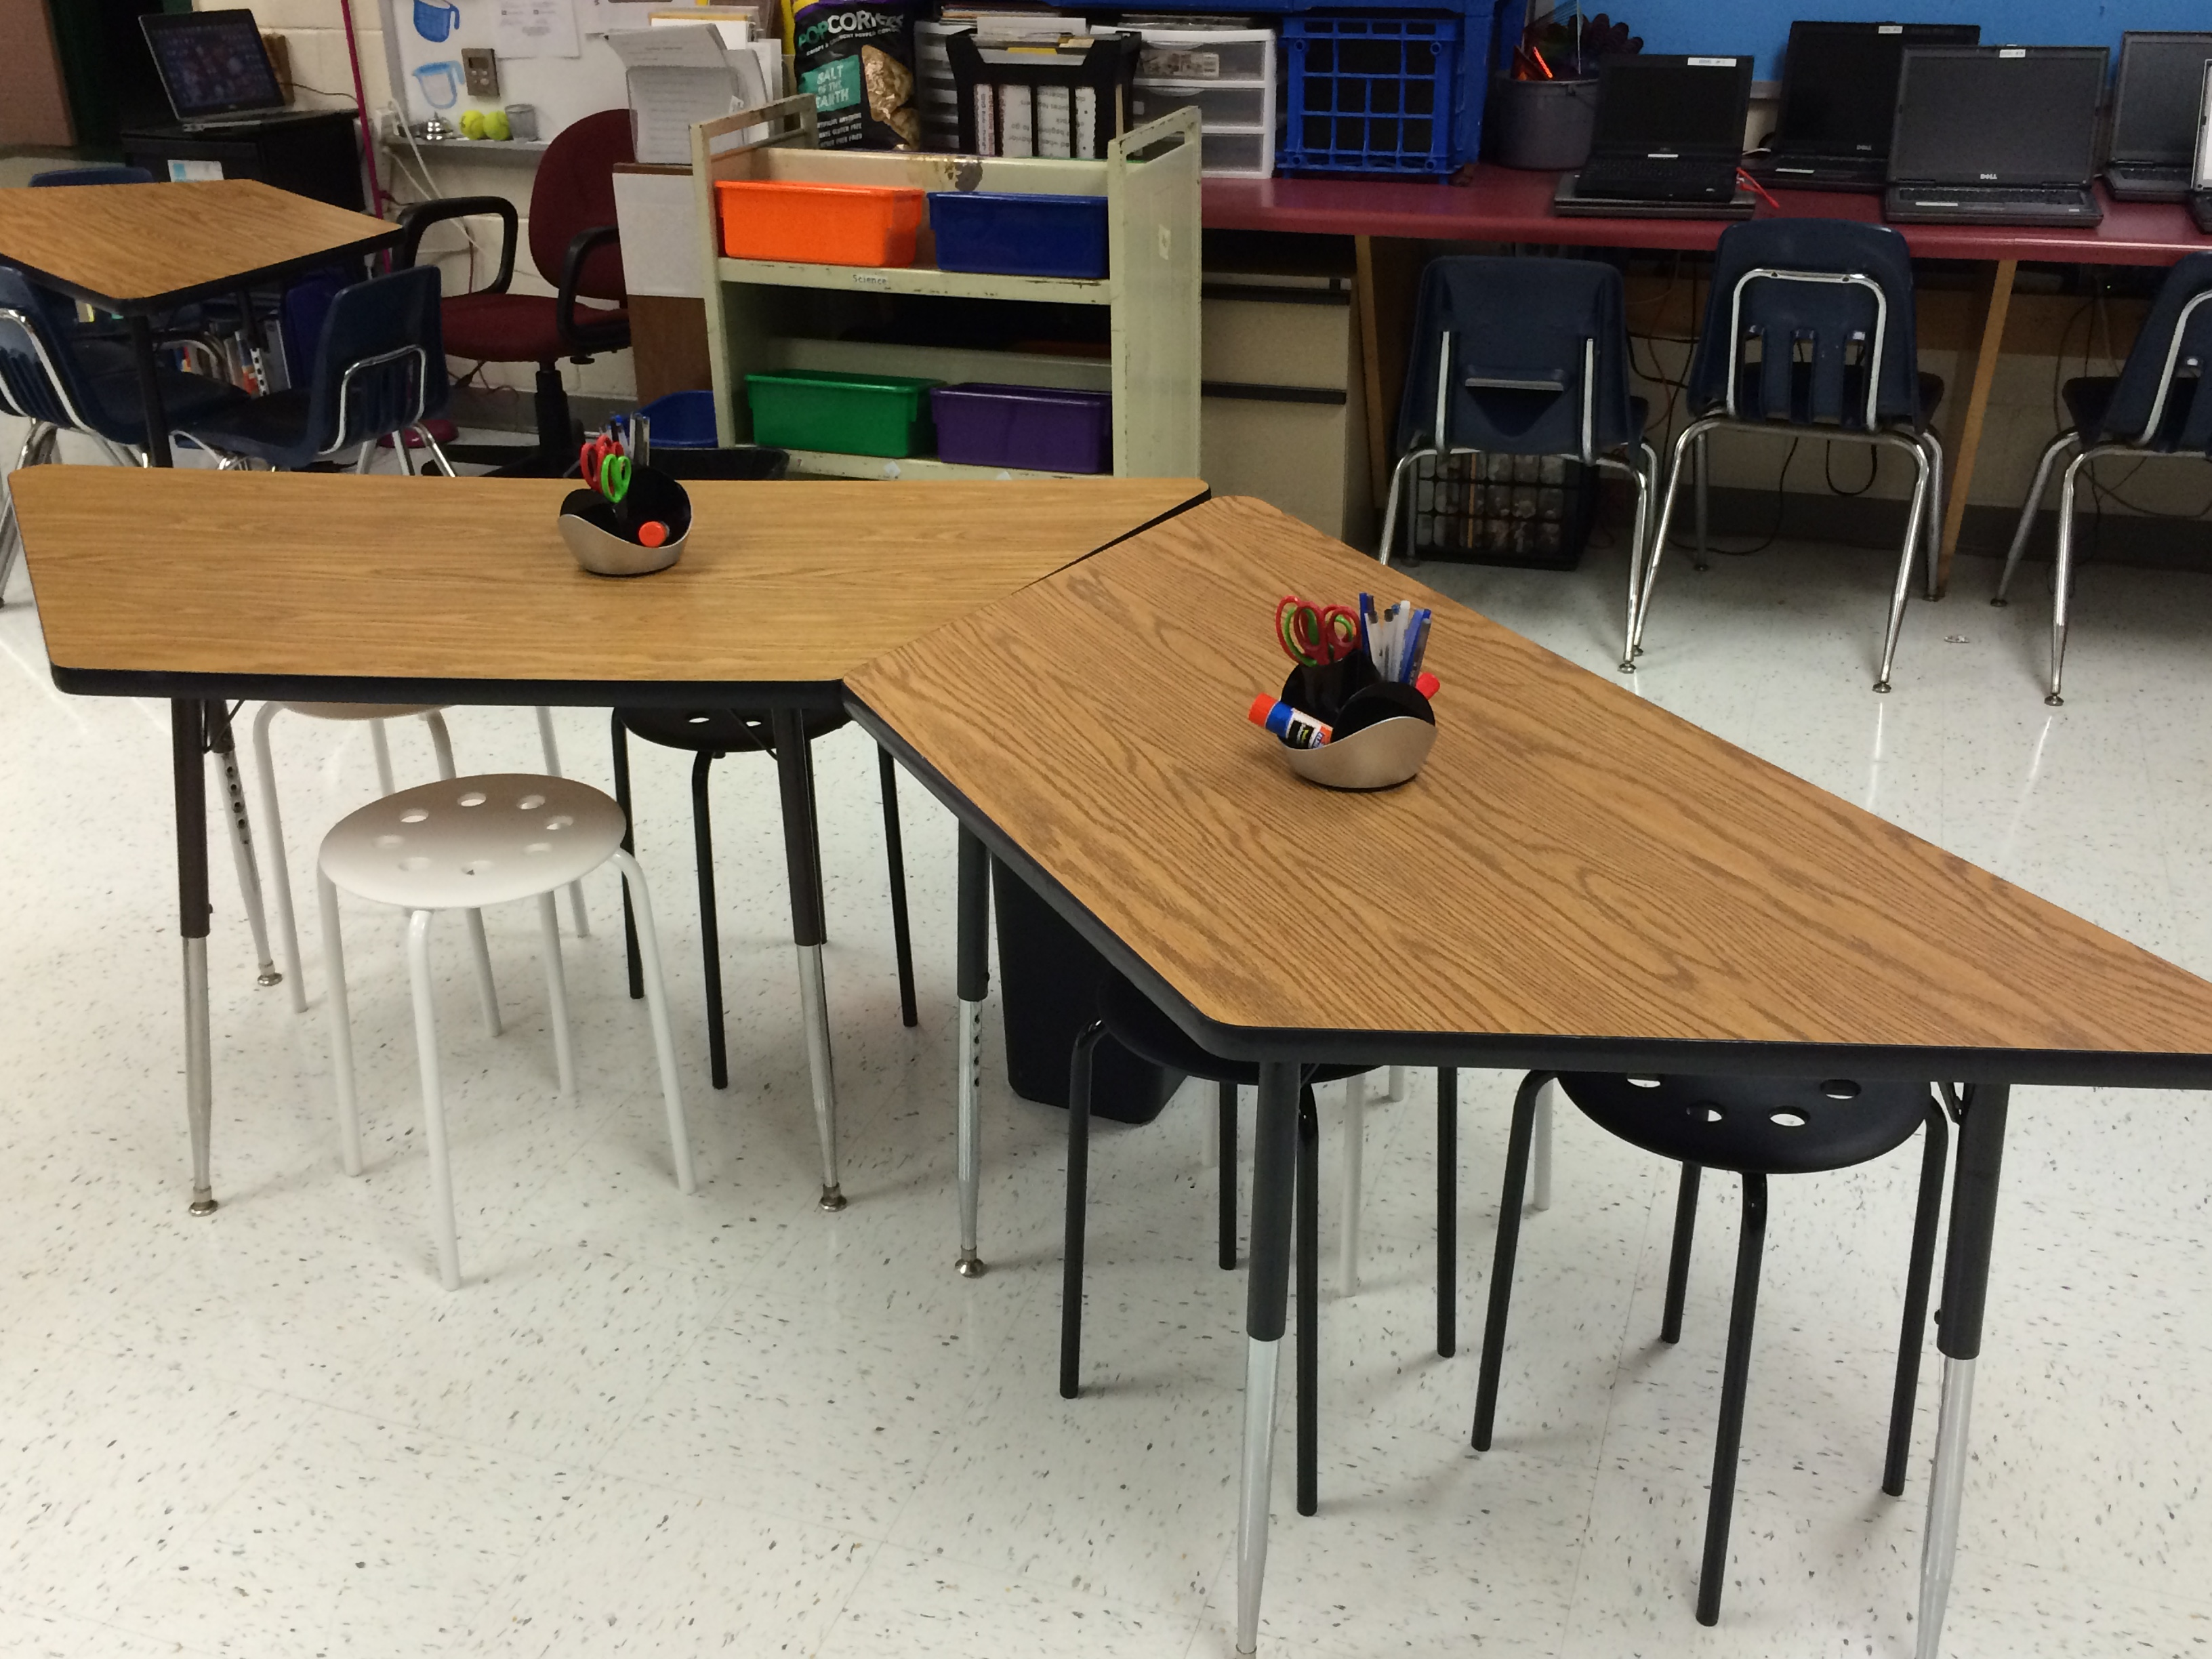 Classroom trapezoid table images for Trapezoid table